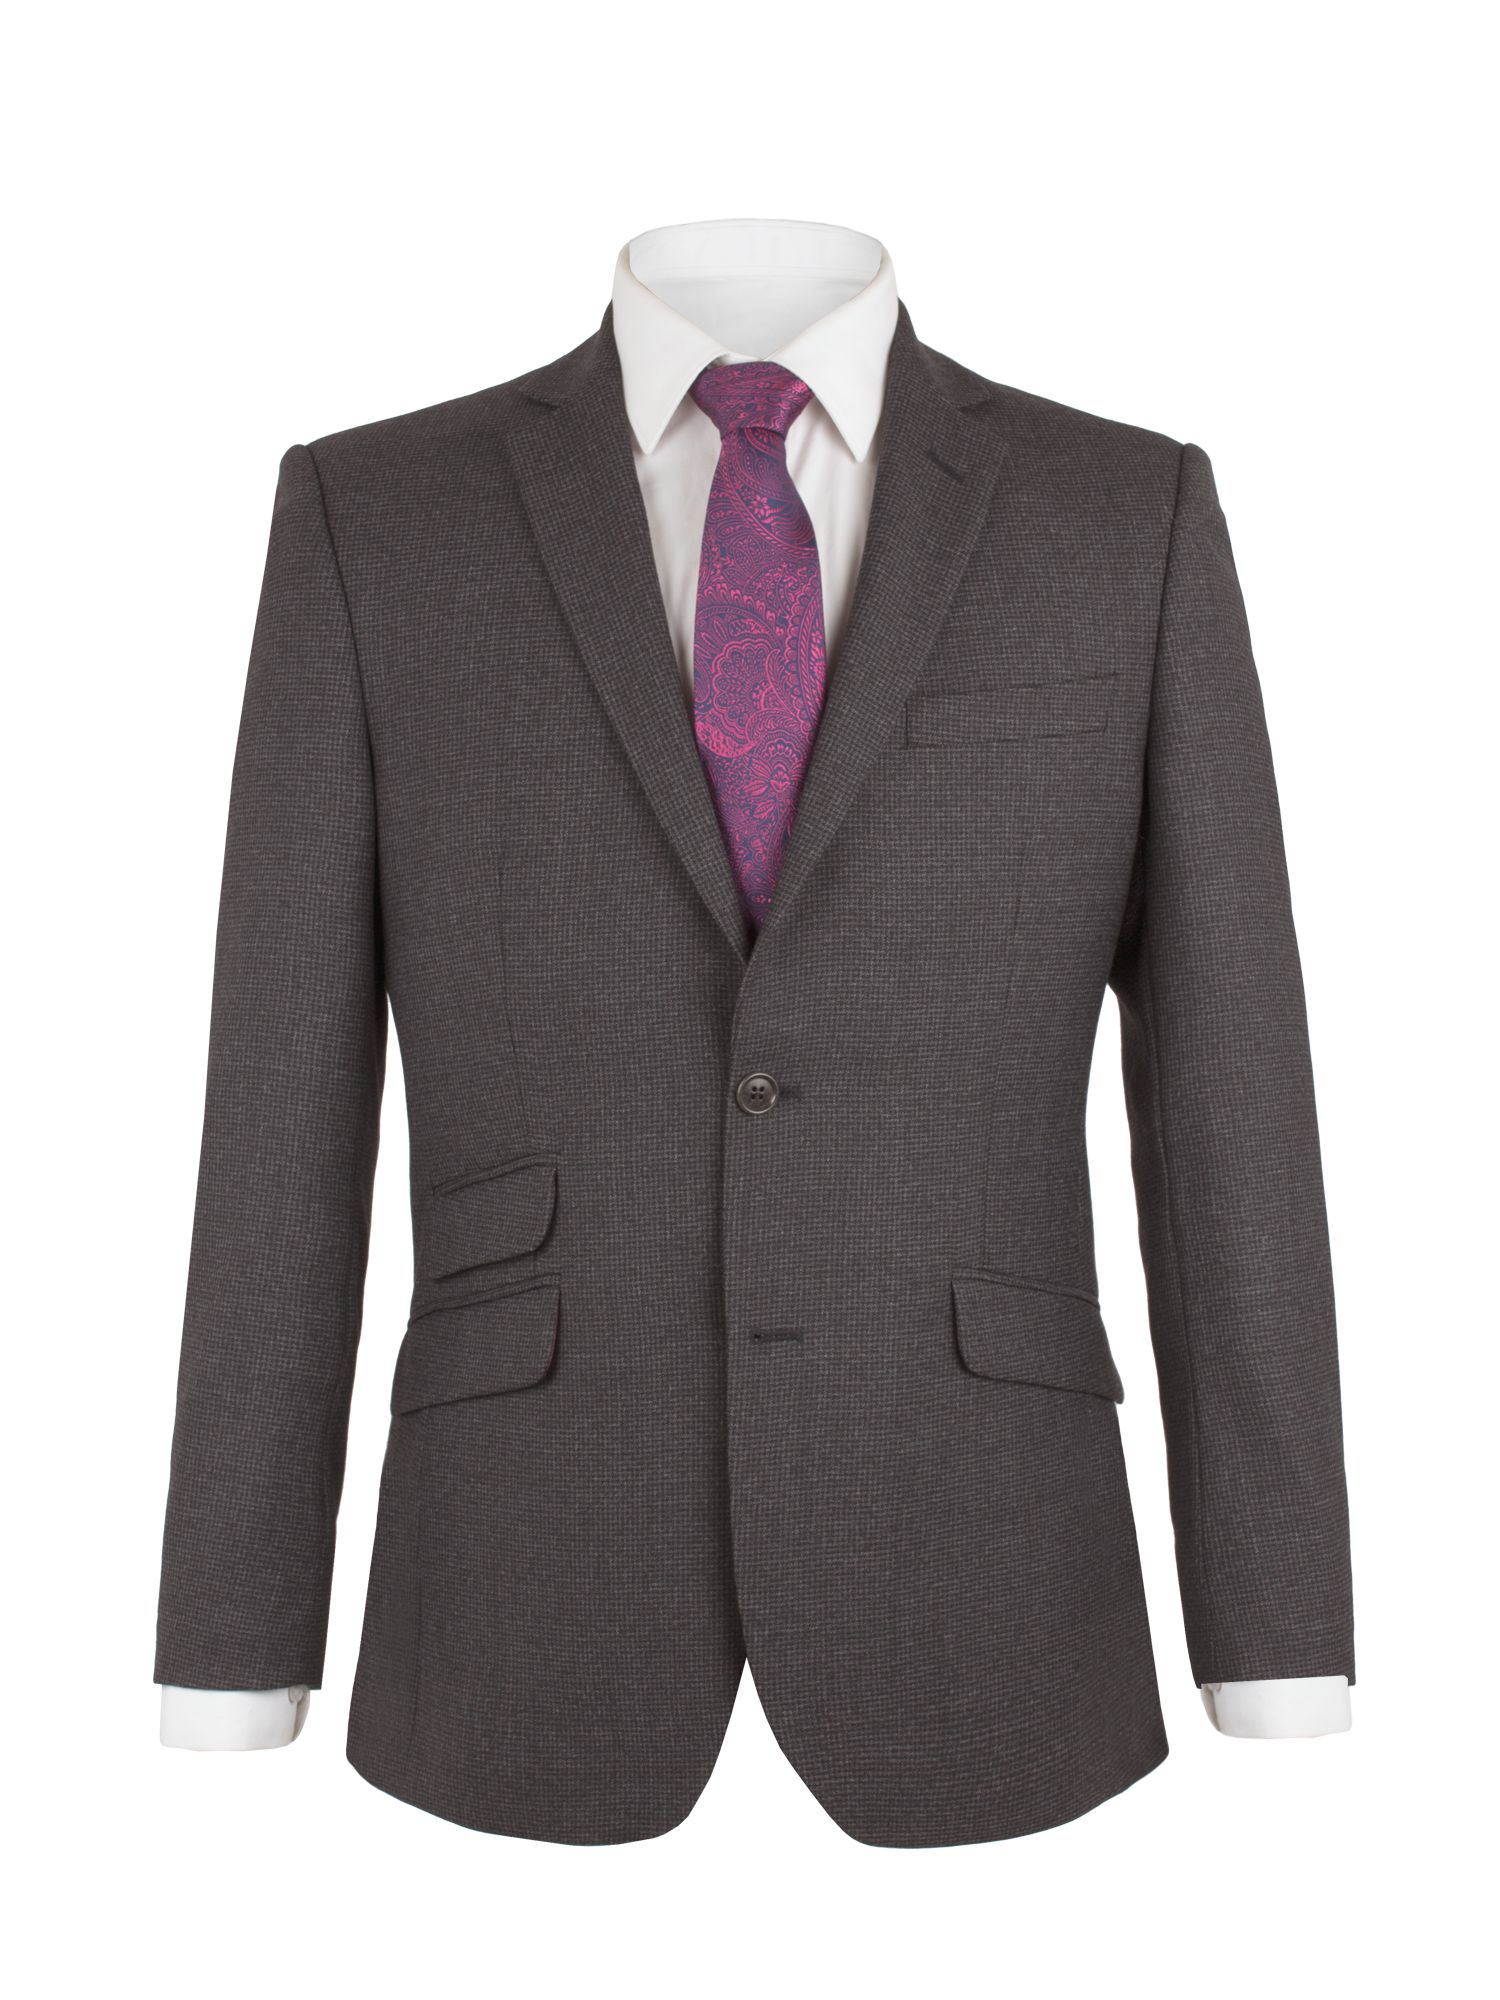 Alexandre of England Men's Alexandre of England Grove Suit Jacket, Charcoal